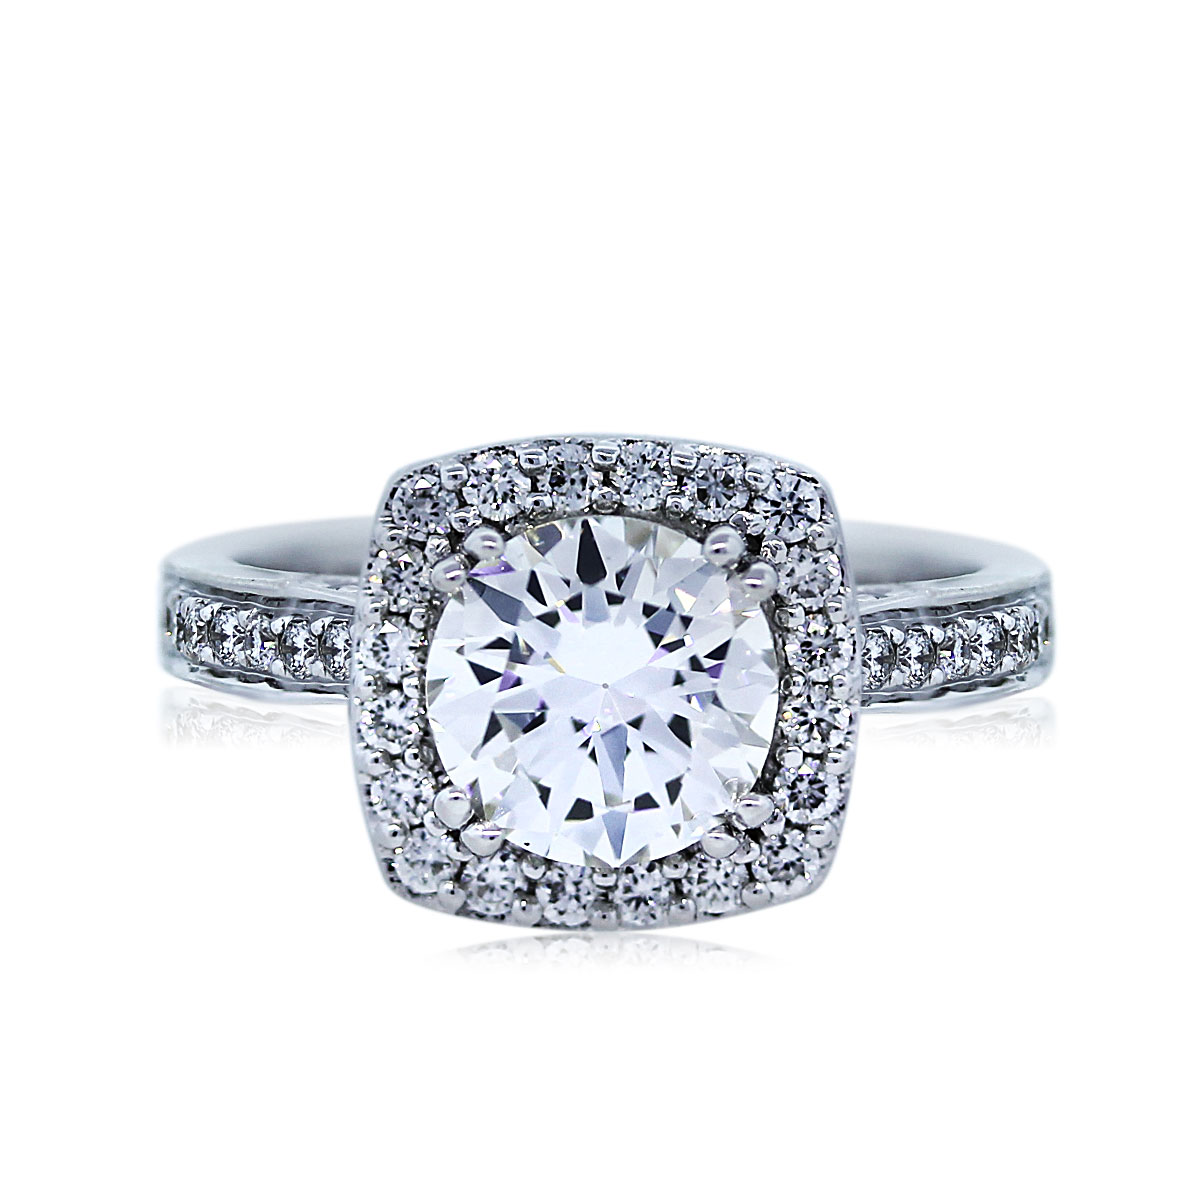 View This 0.93ct Round Brilliant Halo Set Diamond Ring!